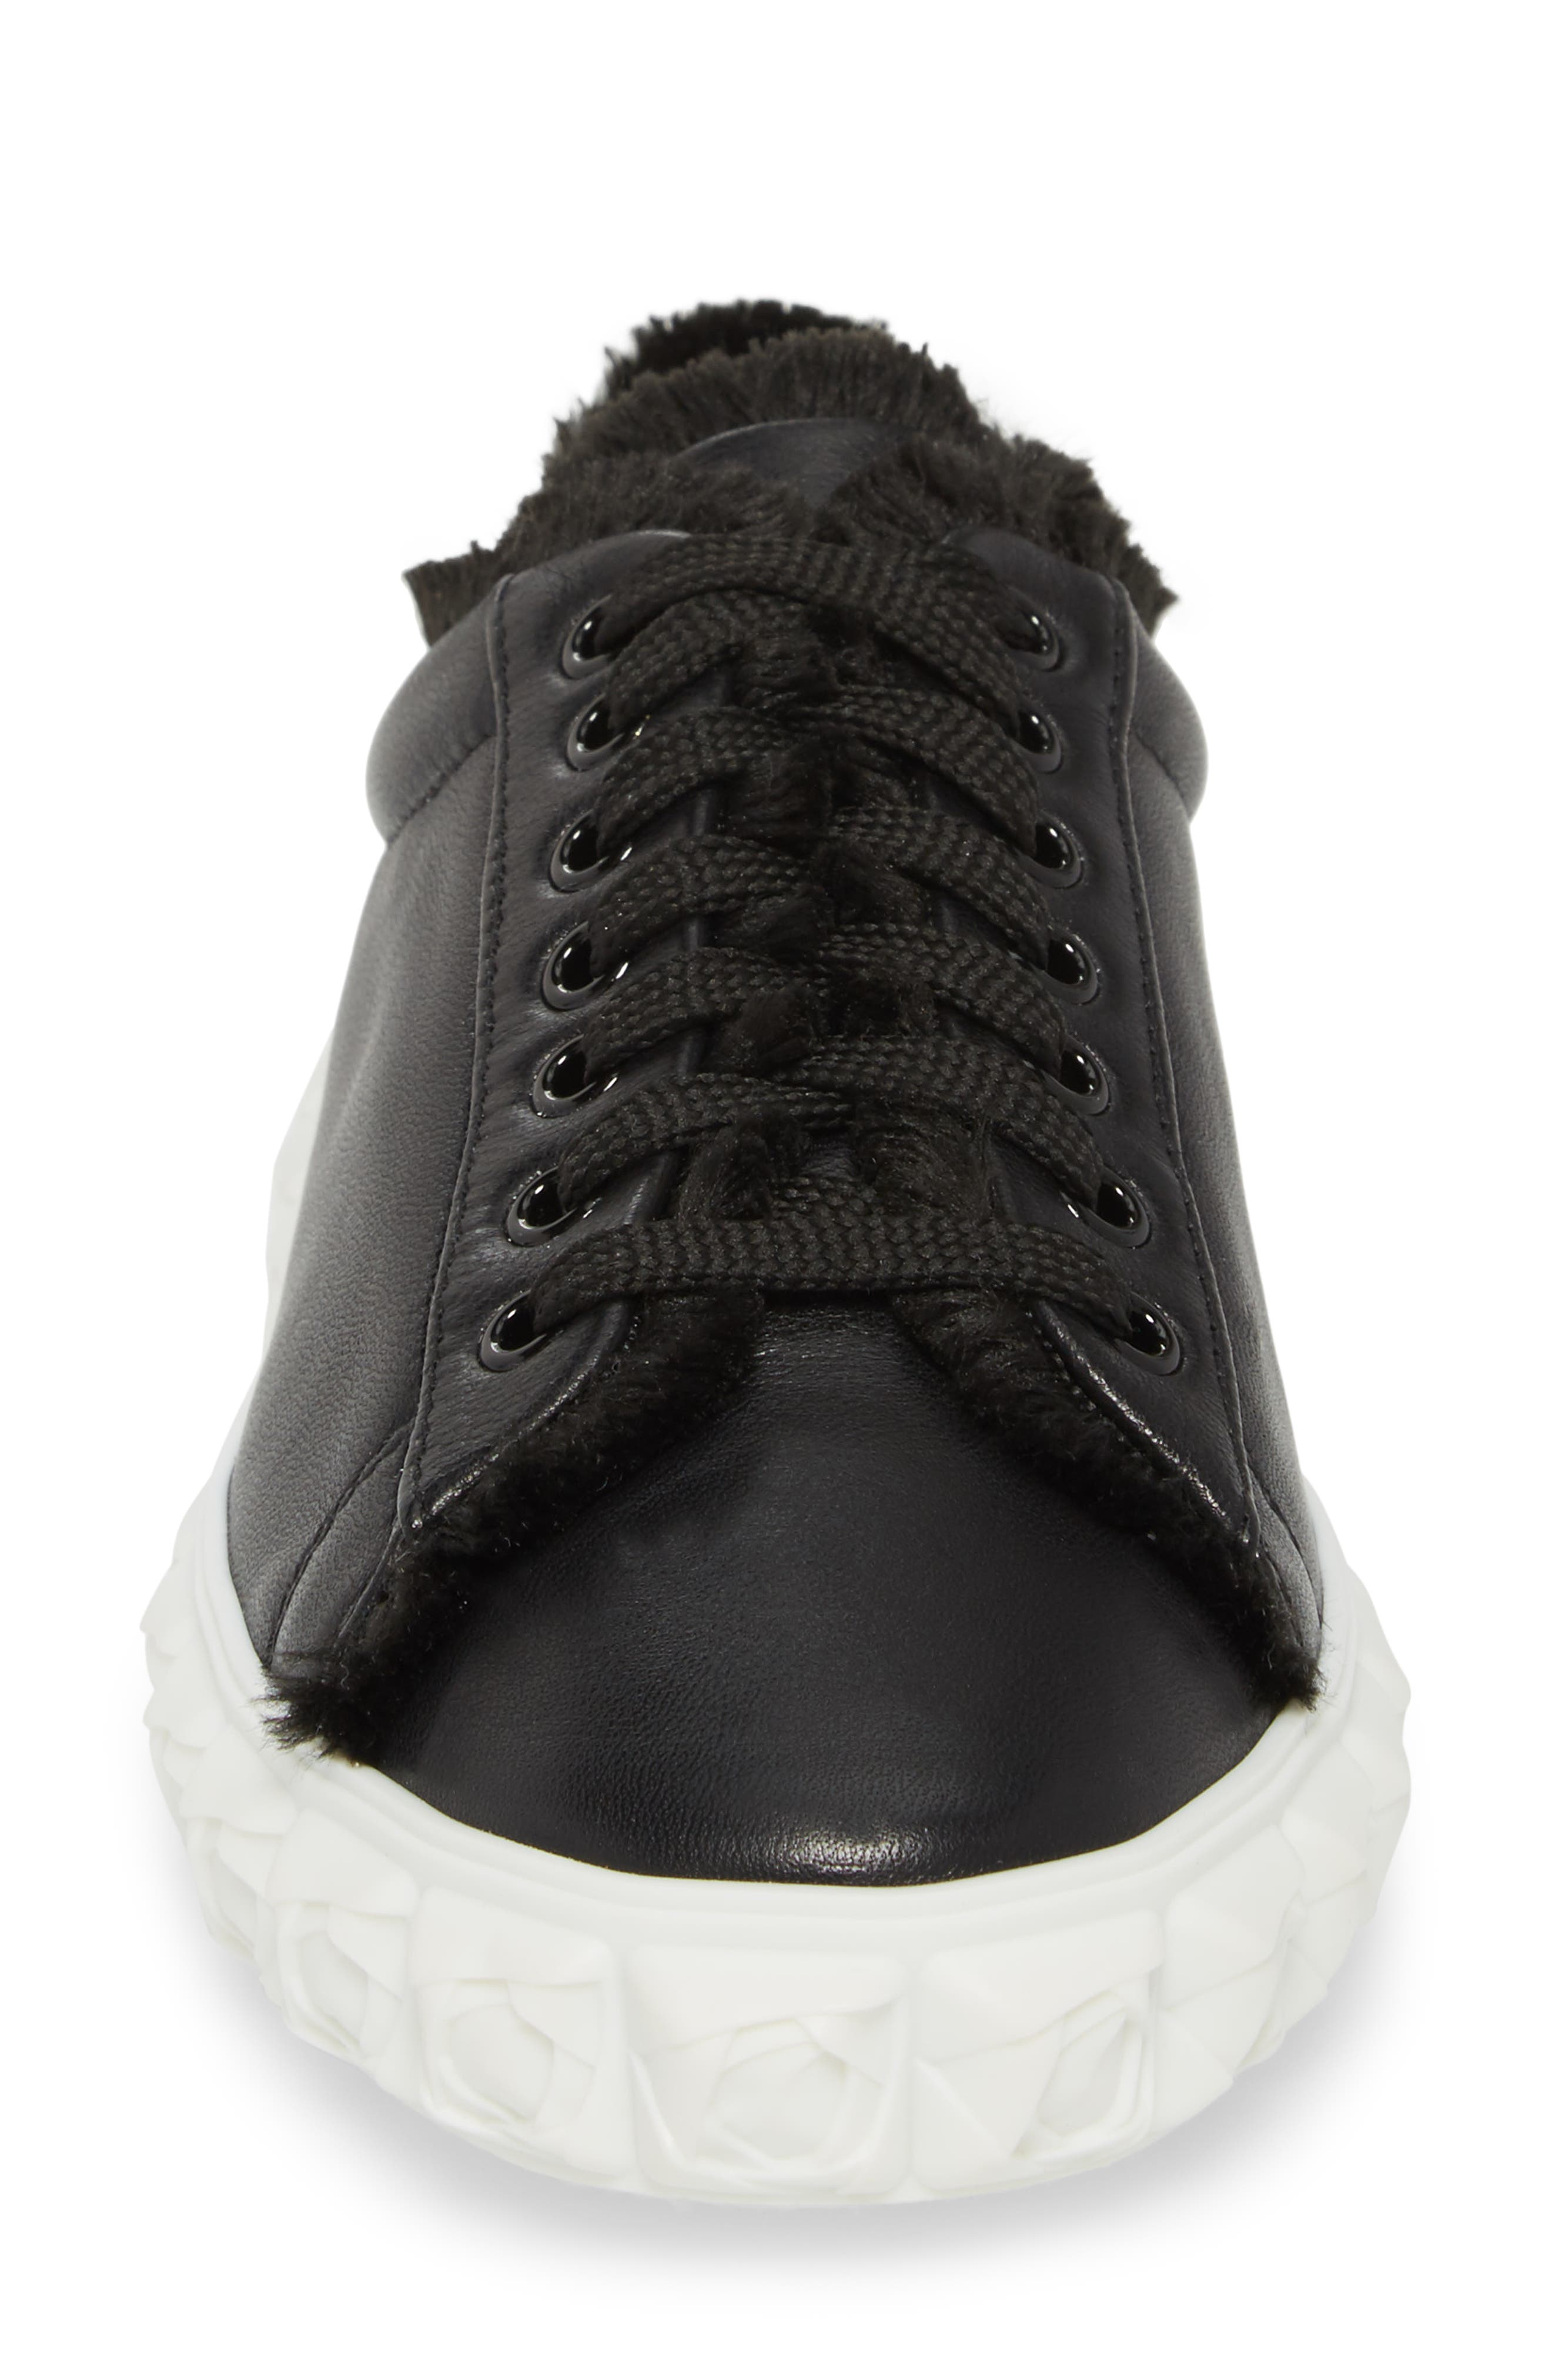 Fringe Sneaker,                             Alternate thumbnail 4, color,                             001